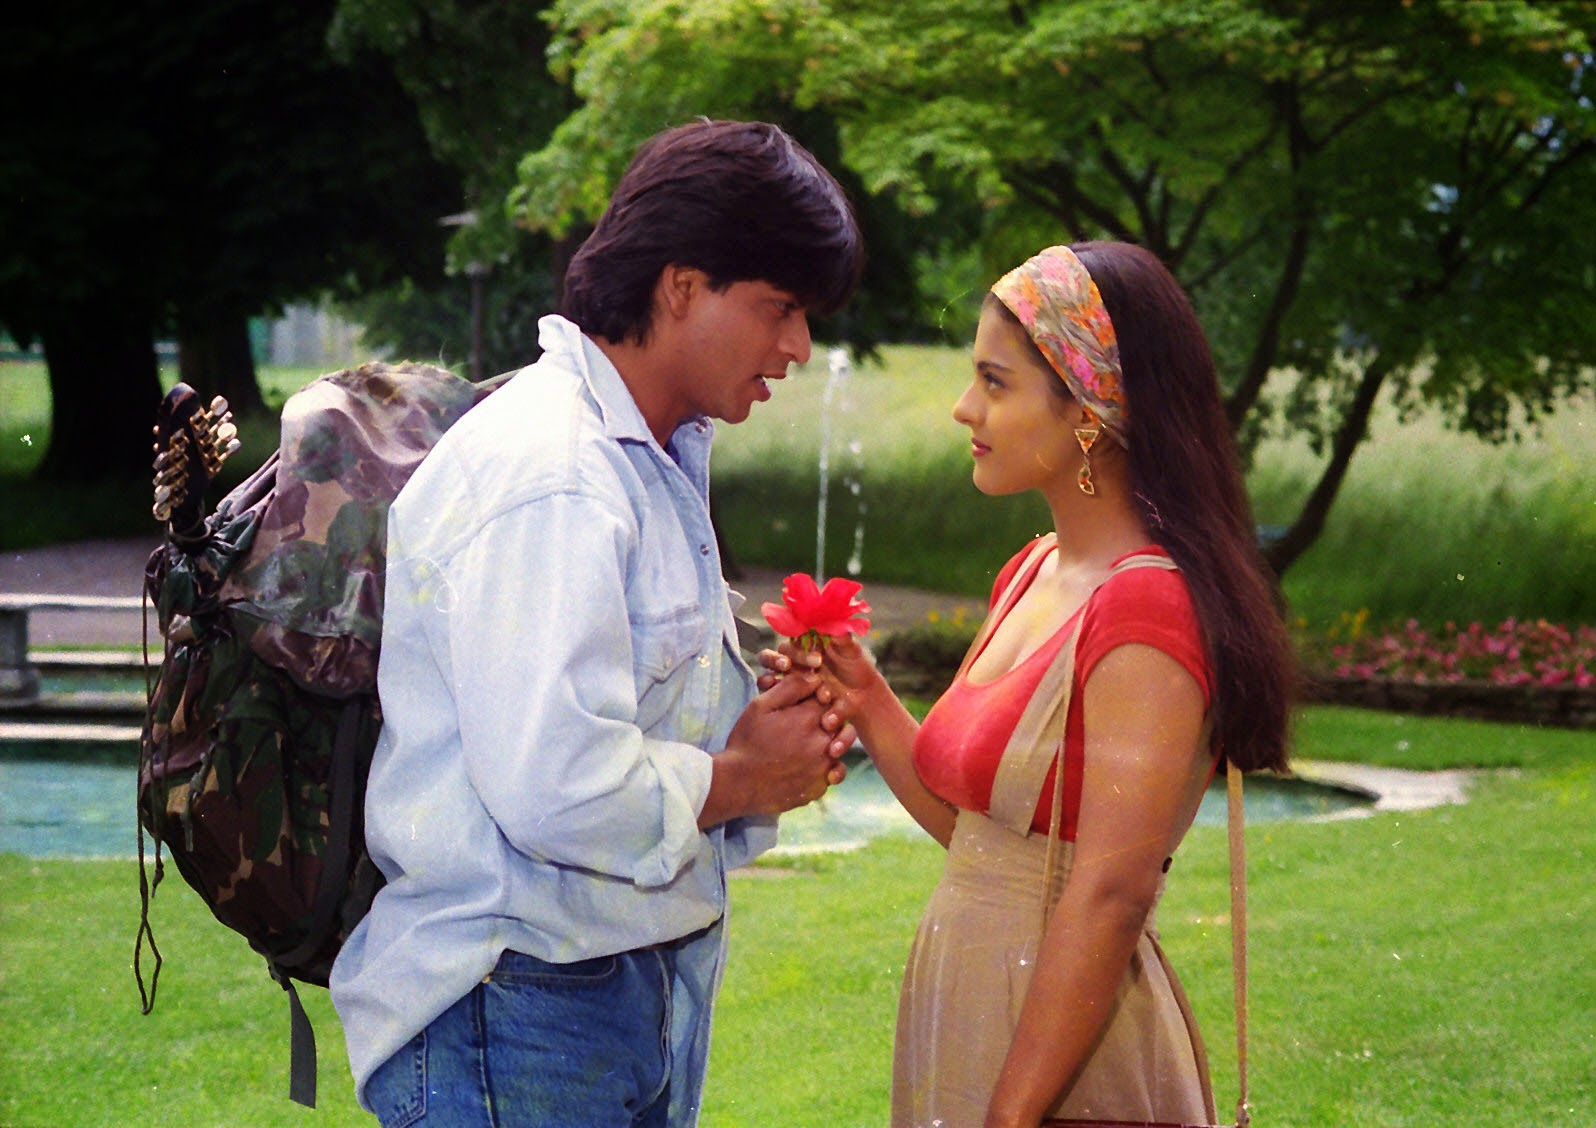 .: Dilwale Dulhania Le Jayenge: Why we still remember it